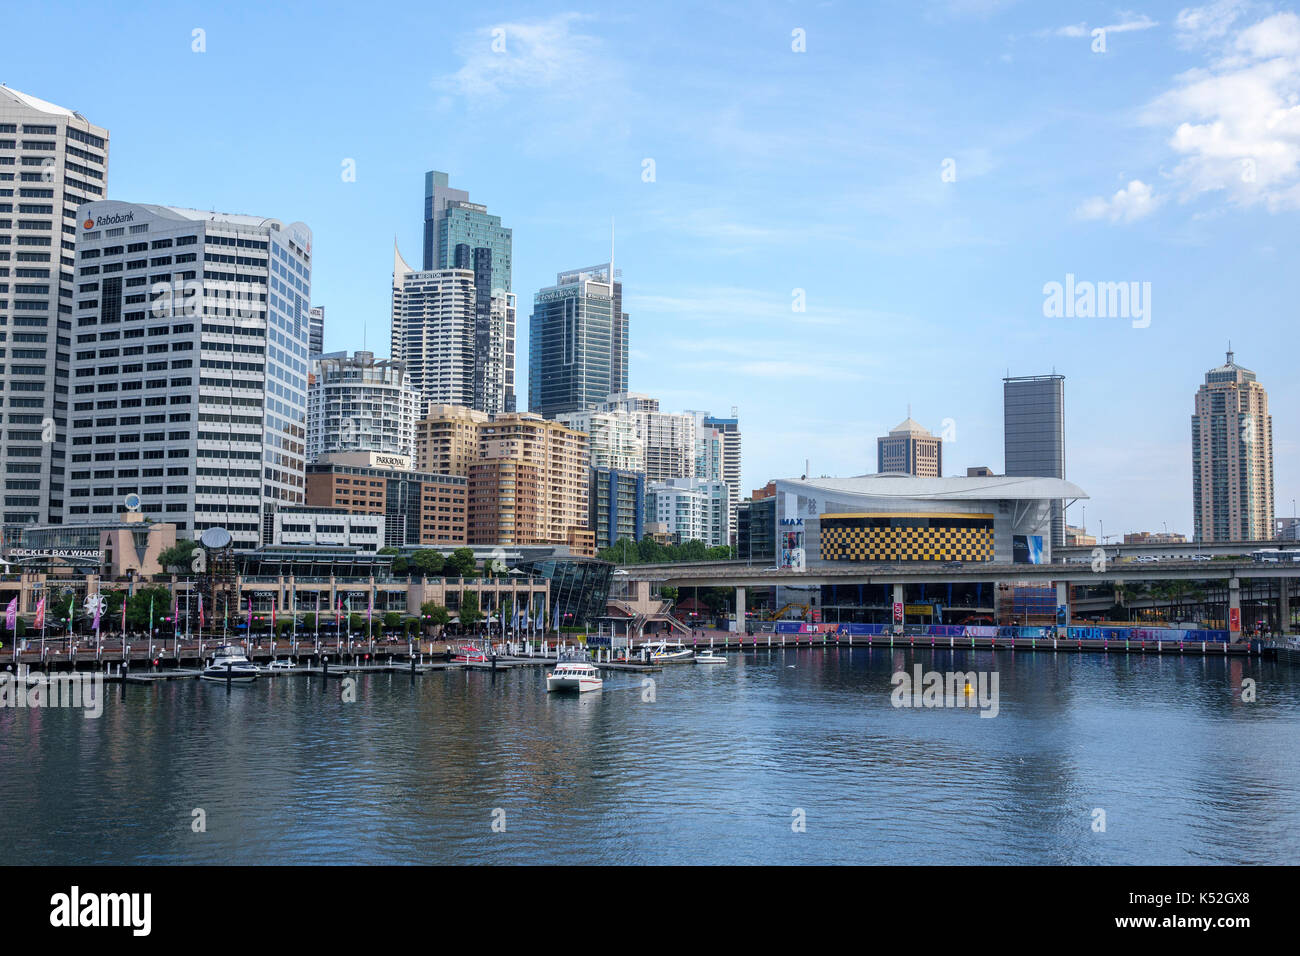 The Imax Theatre At Darling Harbour Sydney Australia Boasted The Biggest Movie Screen In The World November 2016 Prior To Redevelopment - Stock Image